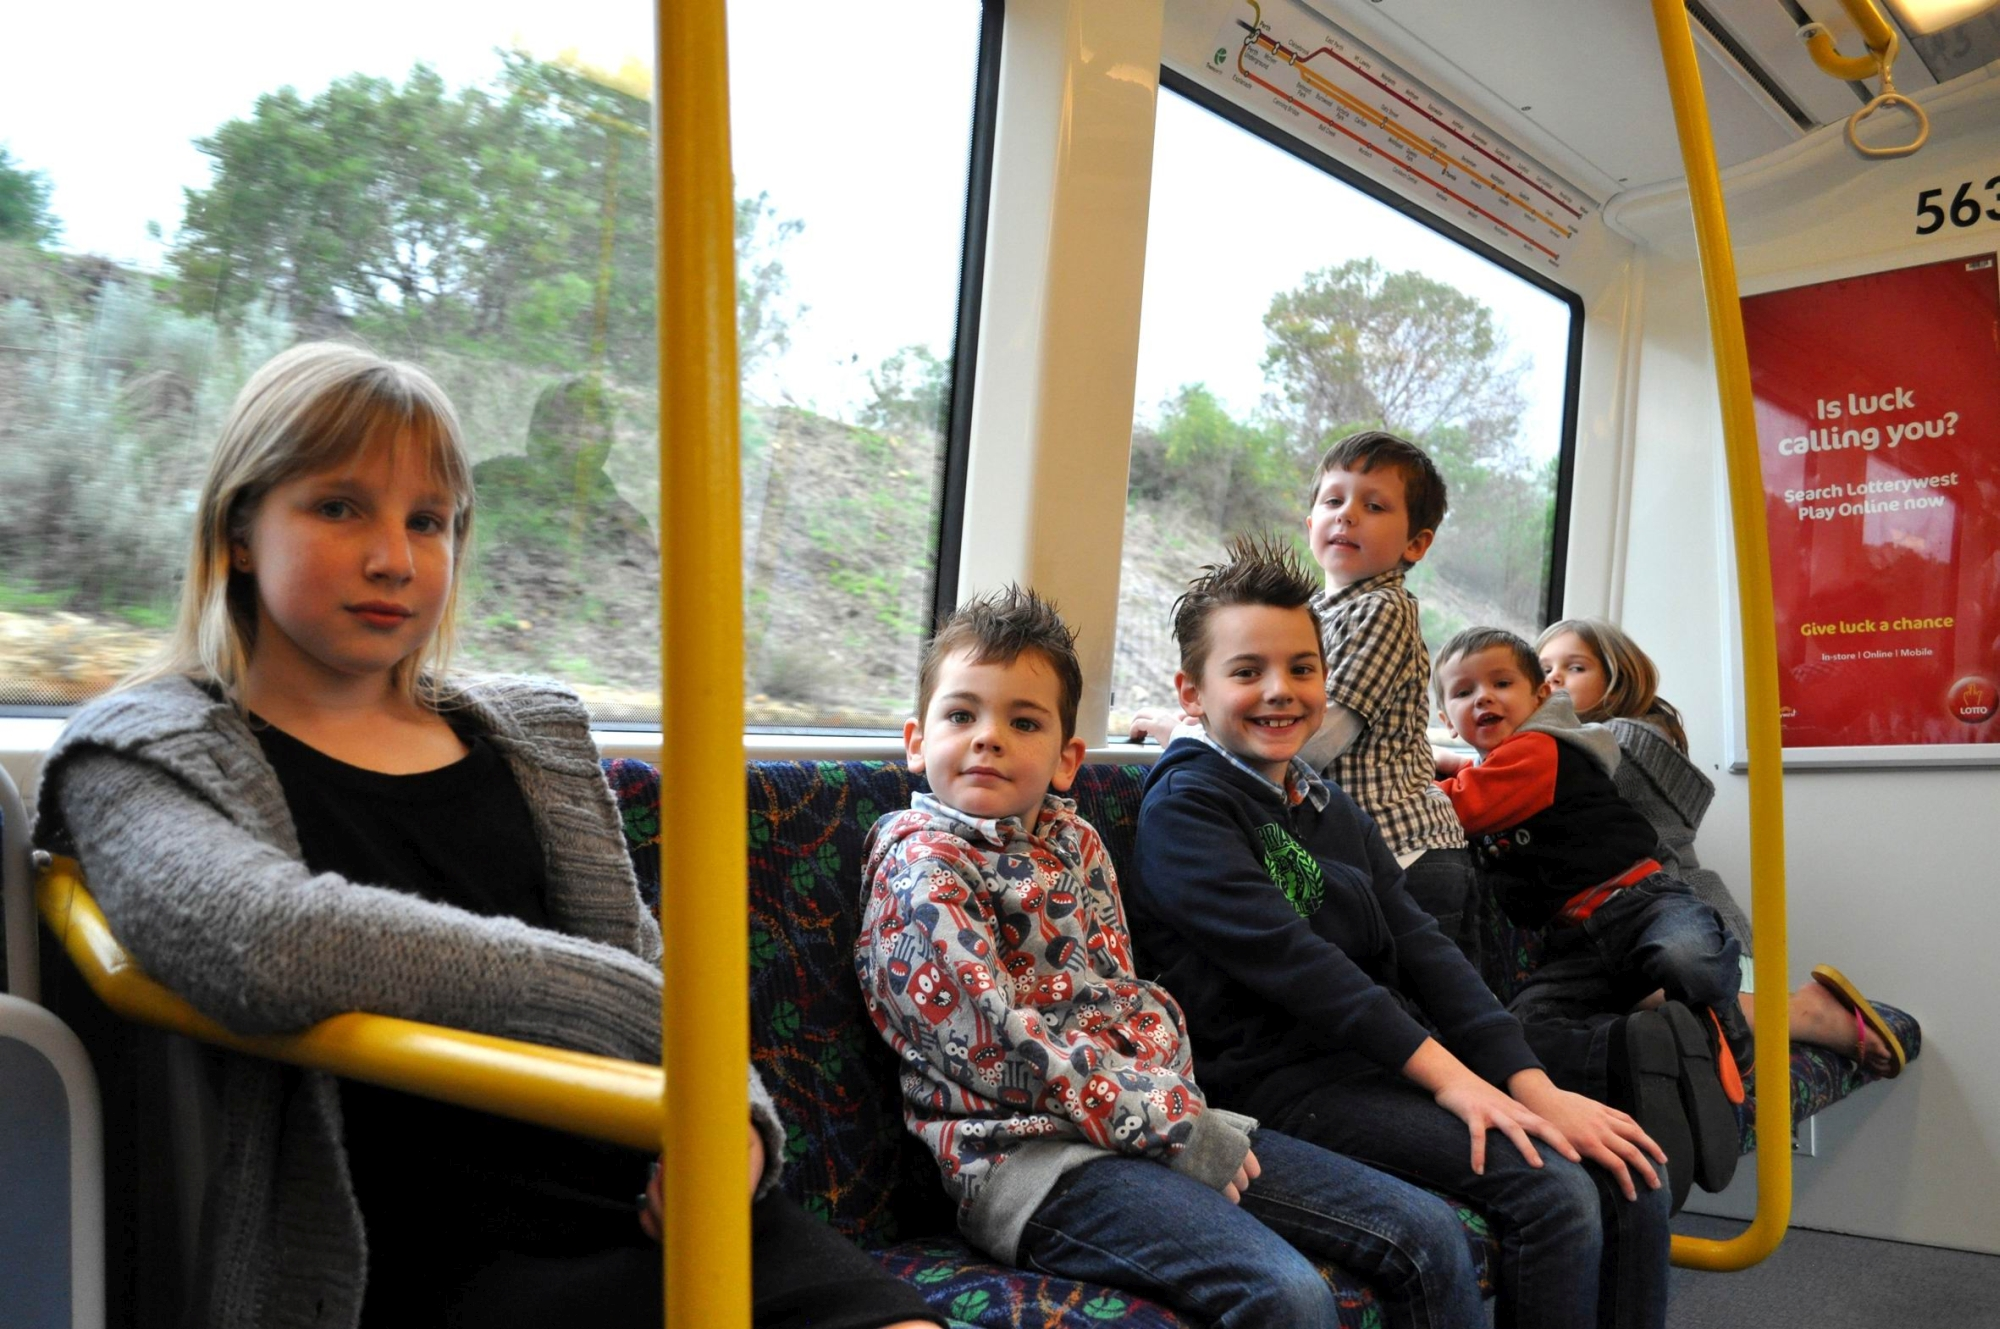 Suzanne de Wit, Matthew and Connor Malan, Ronan and Thomas Grealish and Danielle de Wit enjoy an early train ride.